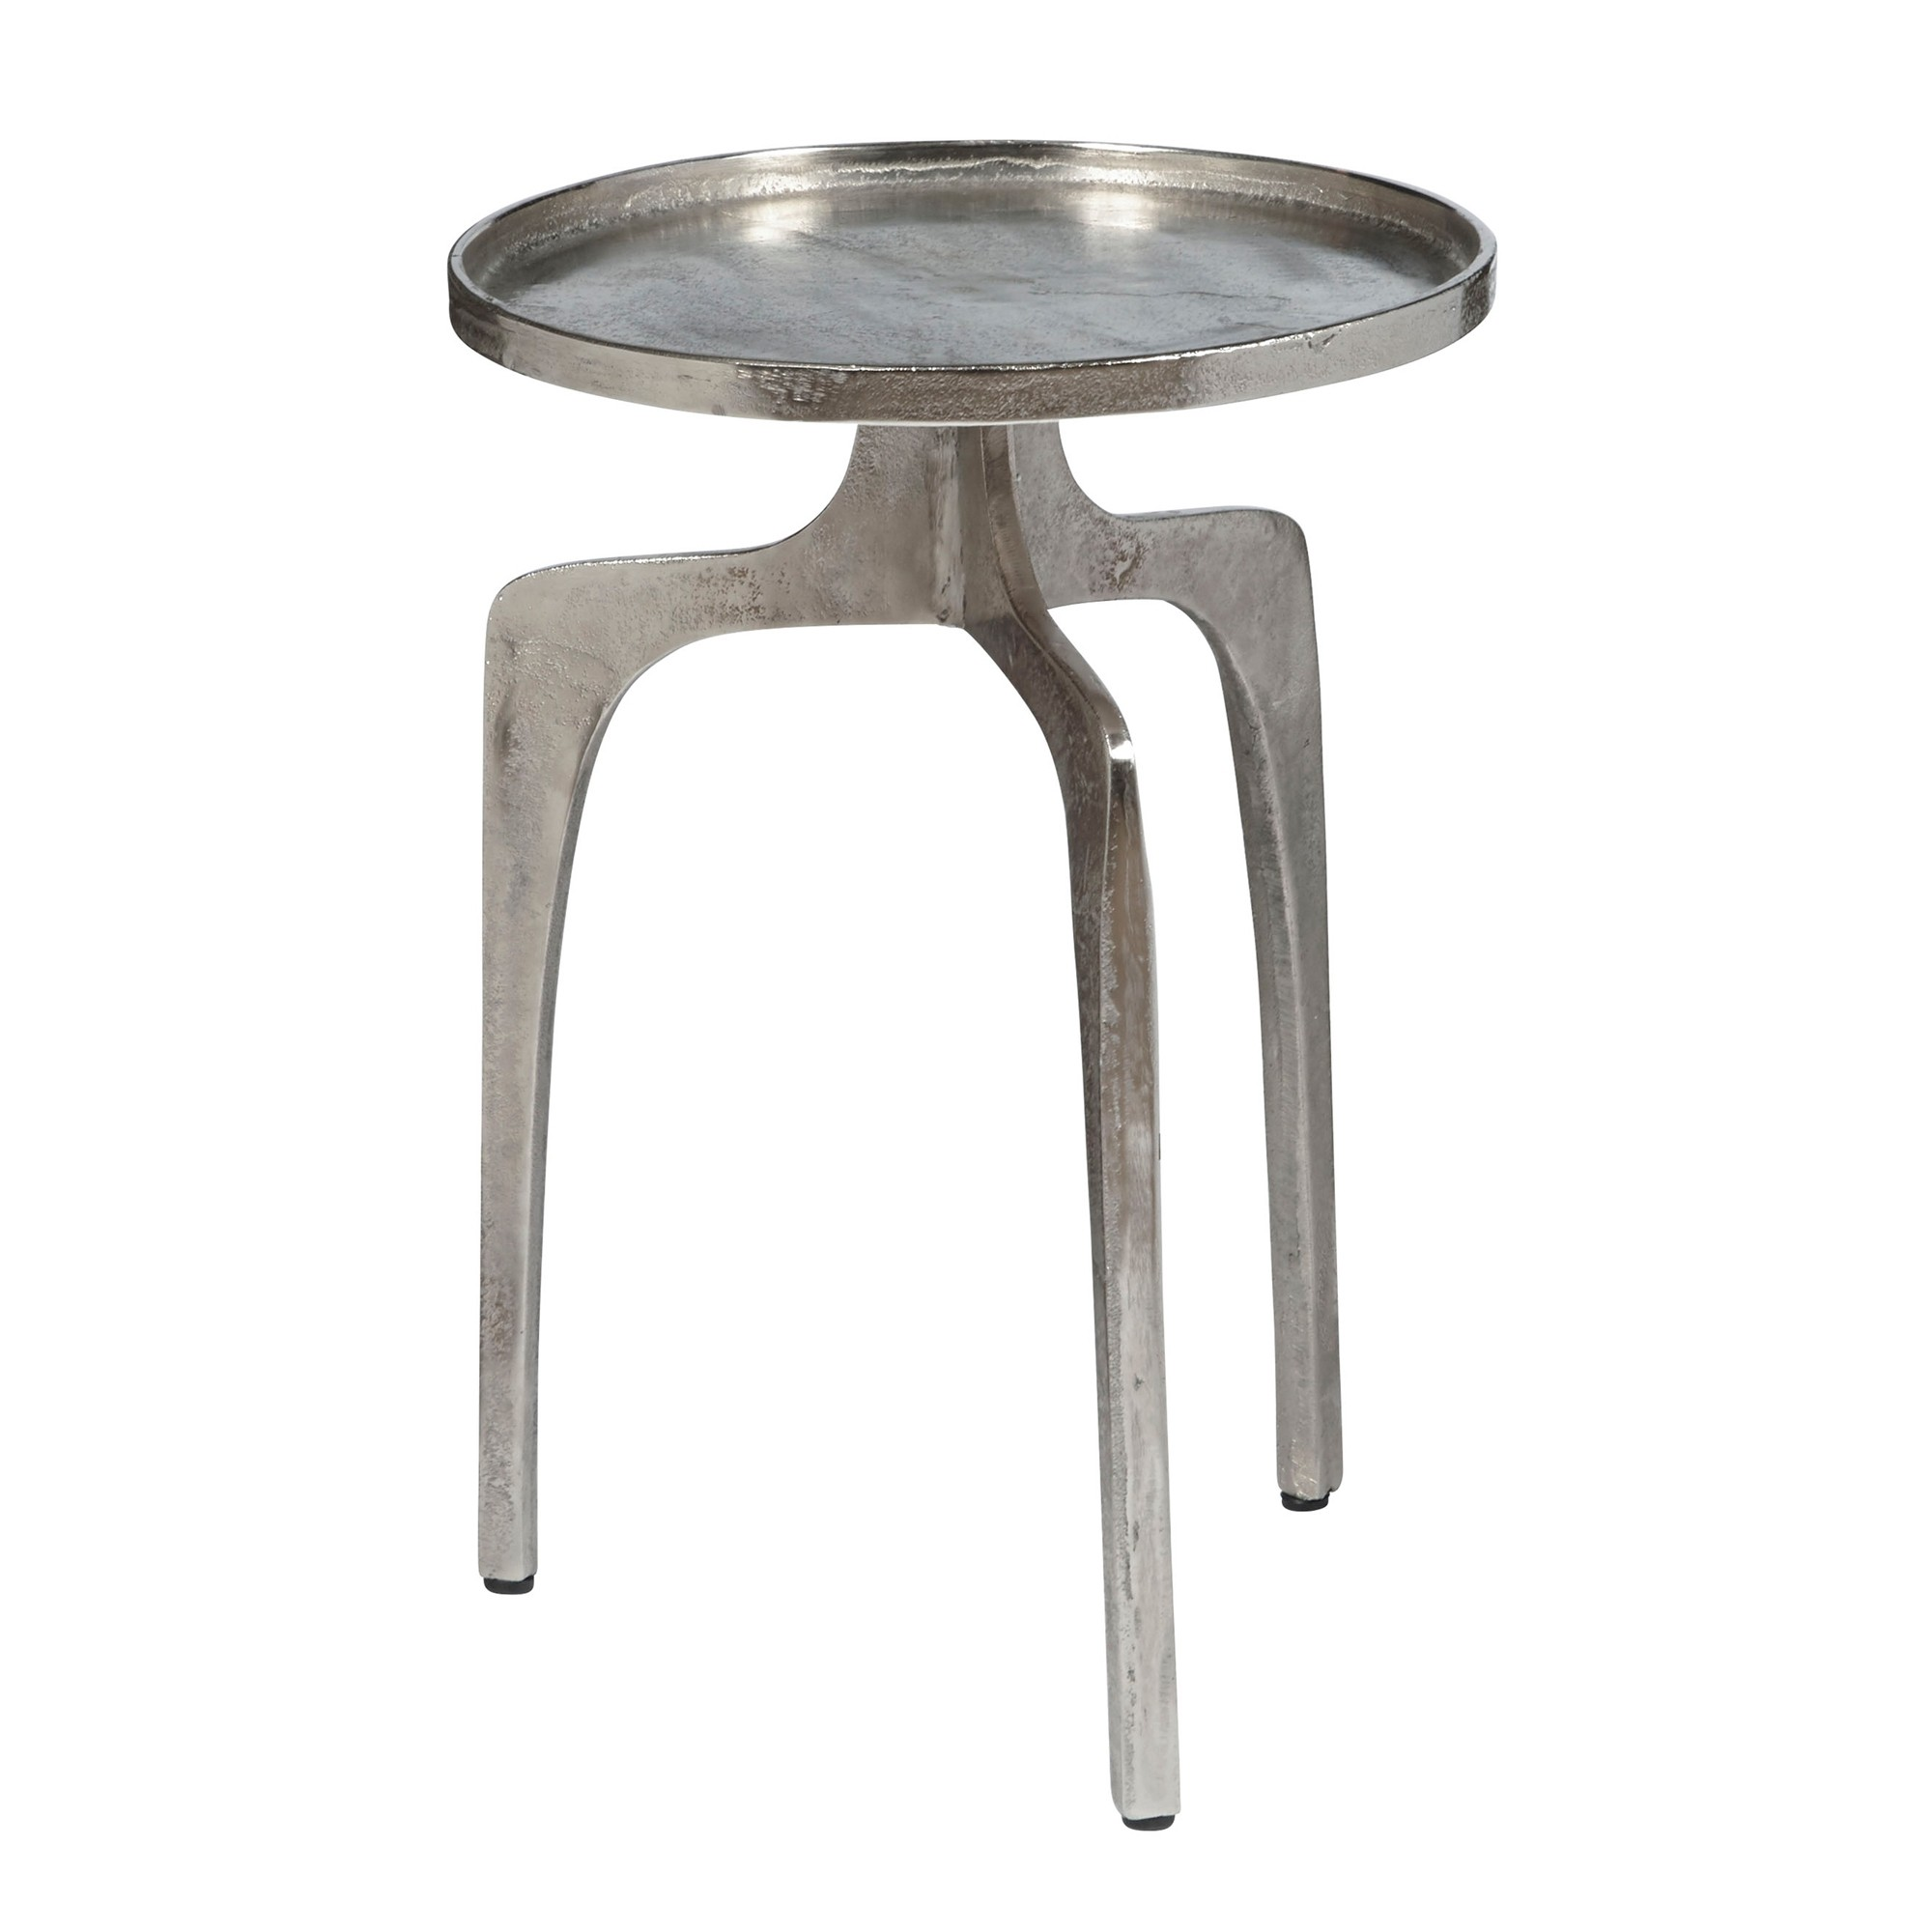 pulaski distressed silver round tray top accent table tepperman with best computer desk handmade wood end tables ikea occasional hairpin legs curio battery operated side lamps